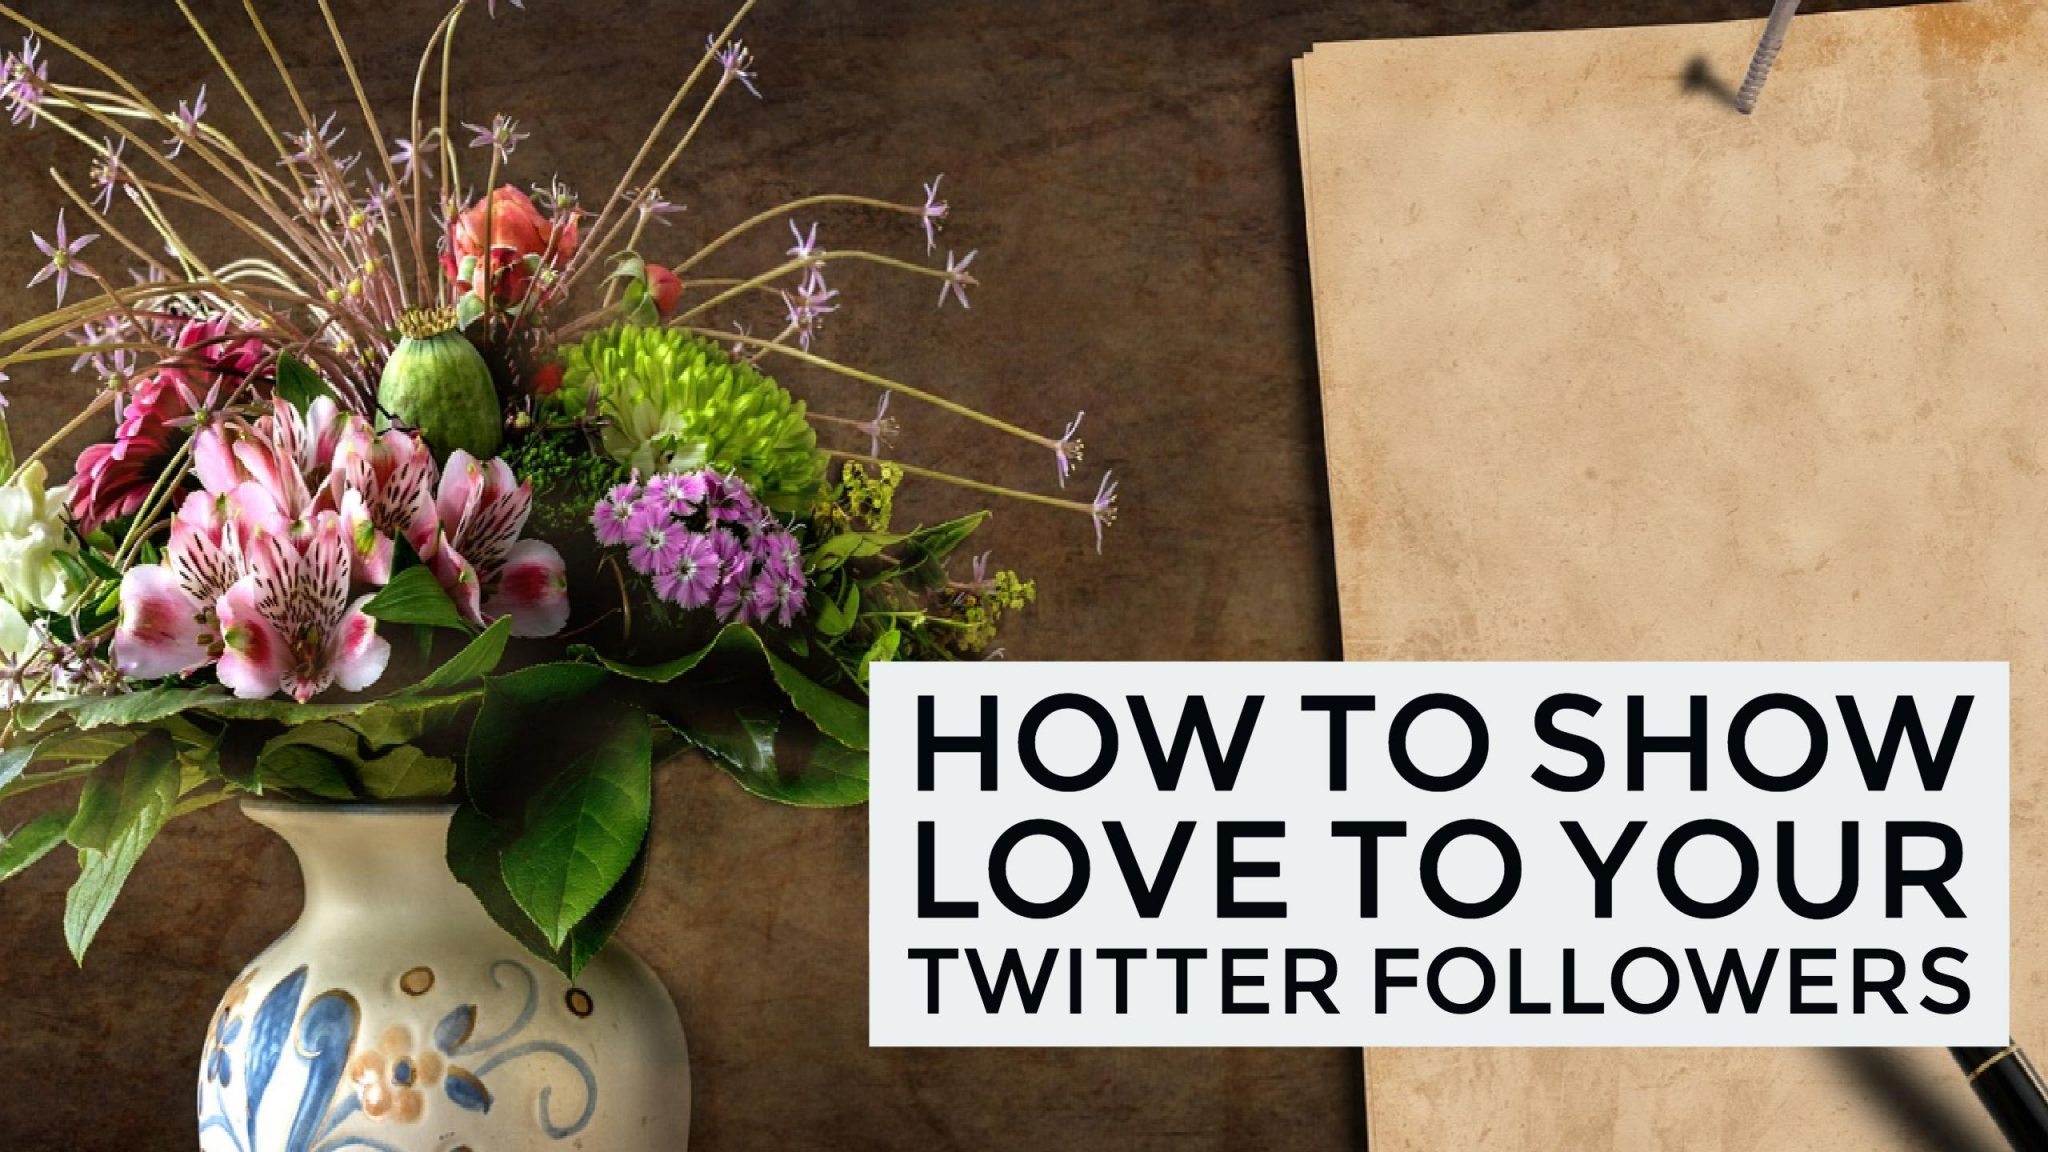 How to Show Love to Your Twitter Followers